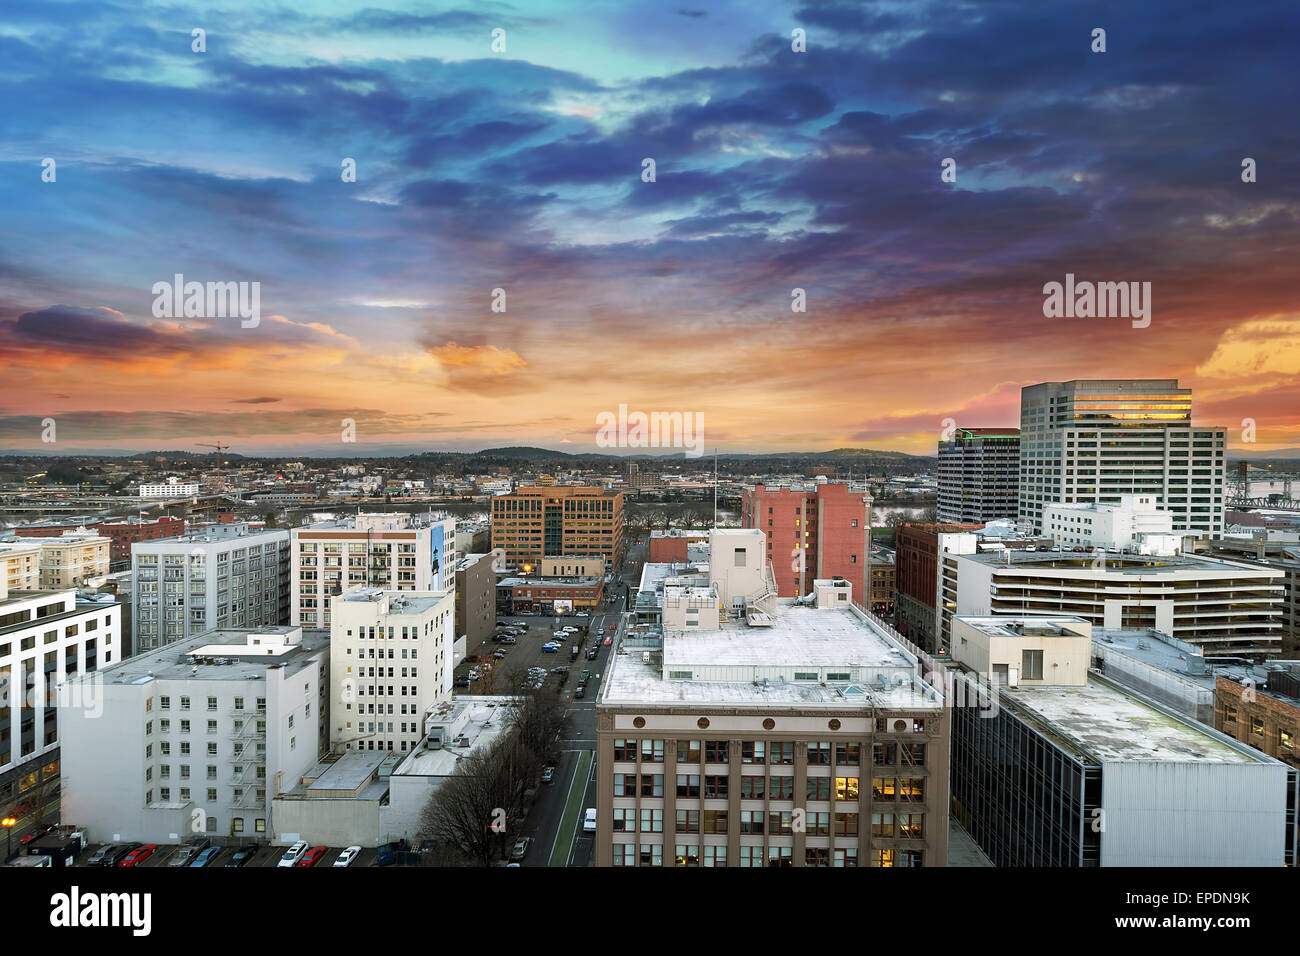 Sunset Over Portland Oregon Downtown Cityscape with Mt Hood in the Distant - Stock Image